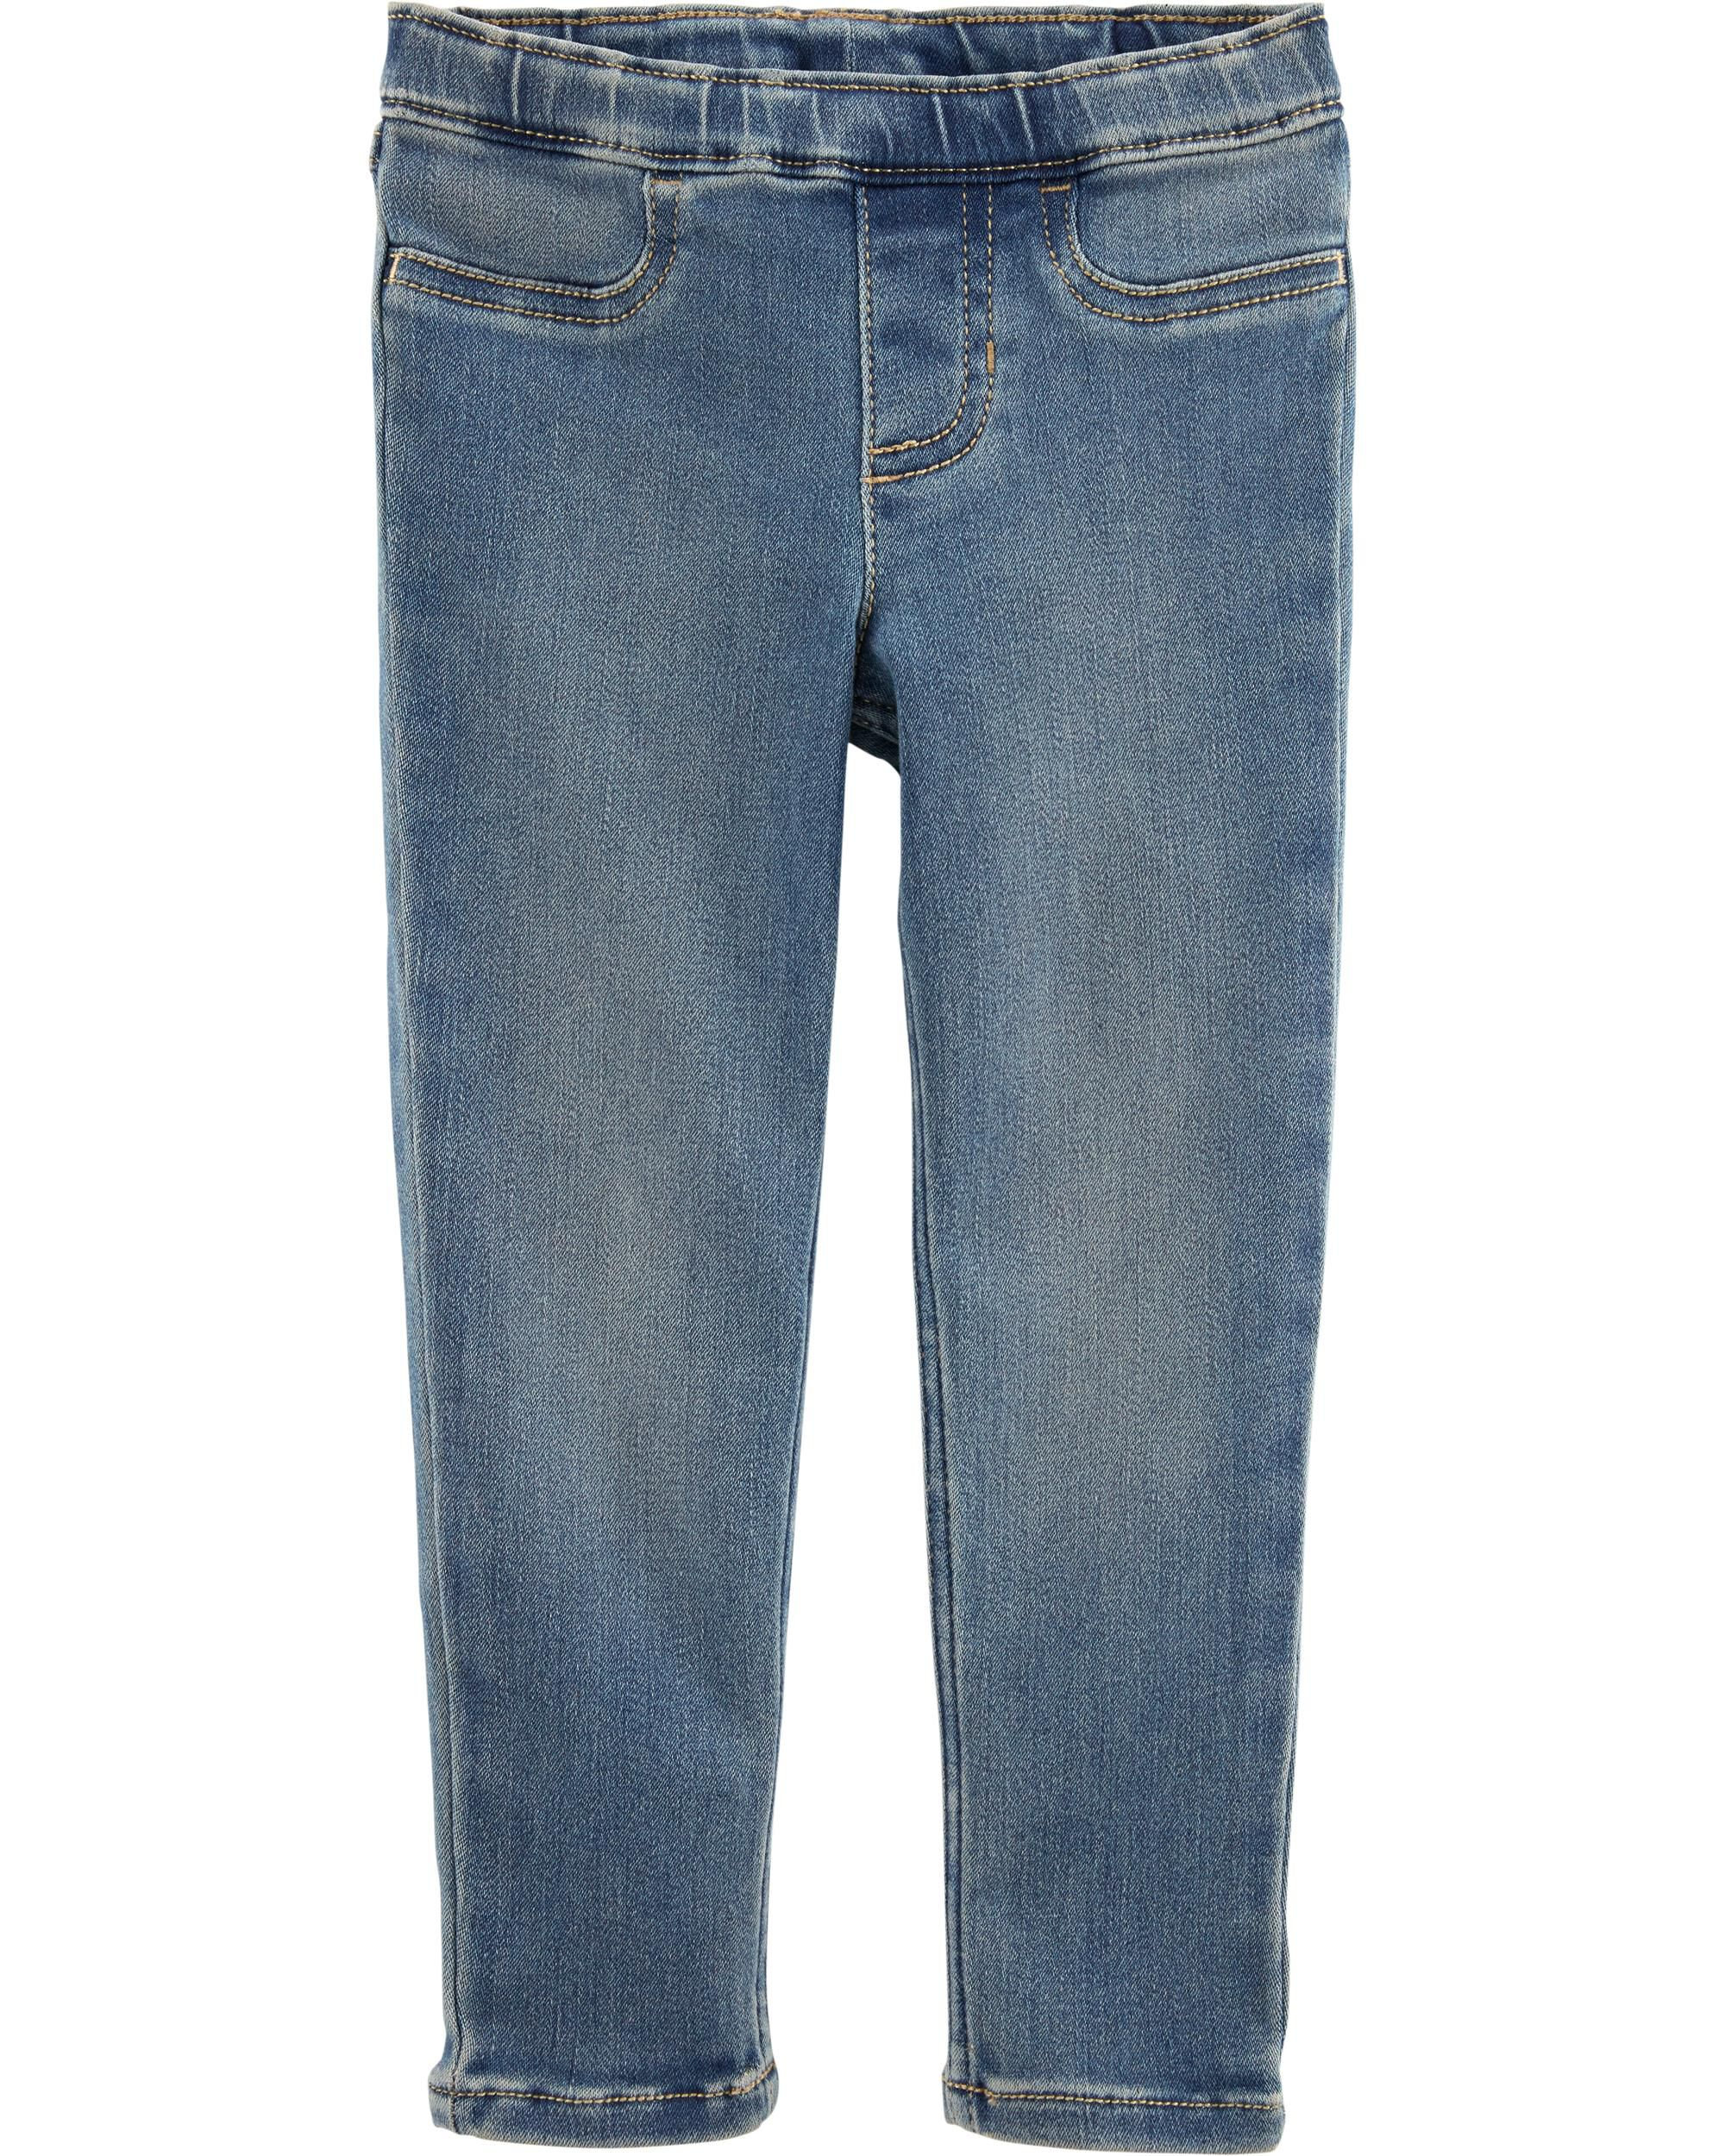 *CLEARANCE* Pull-On Jeggings